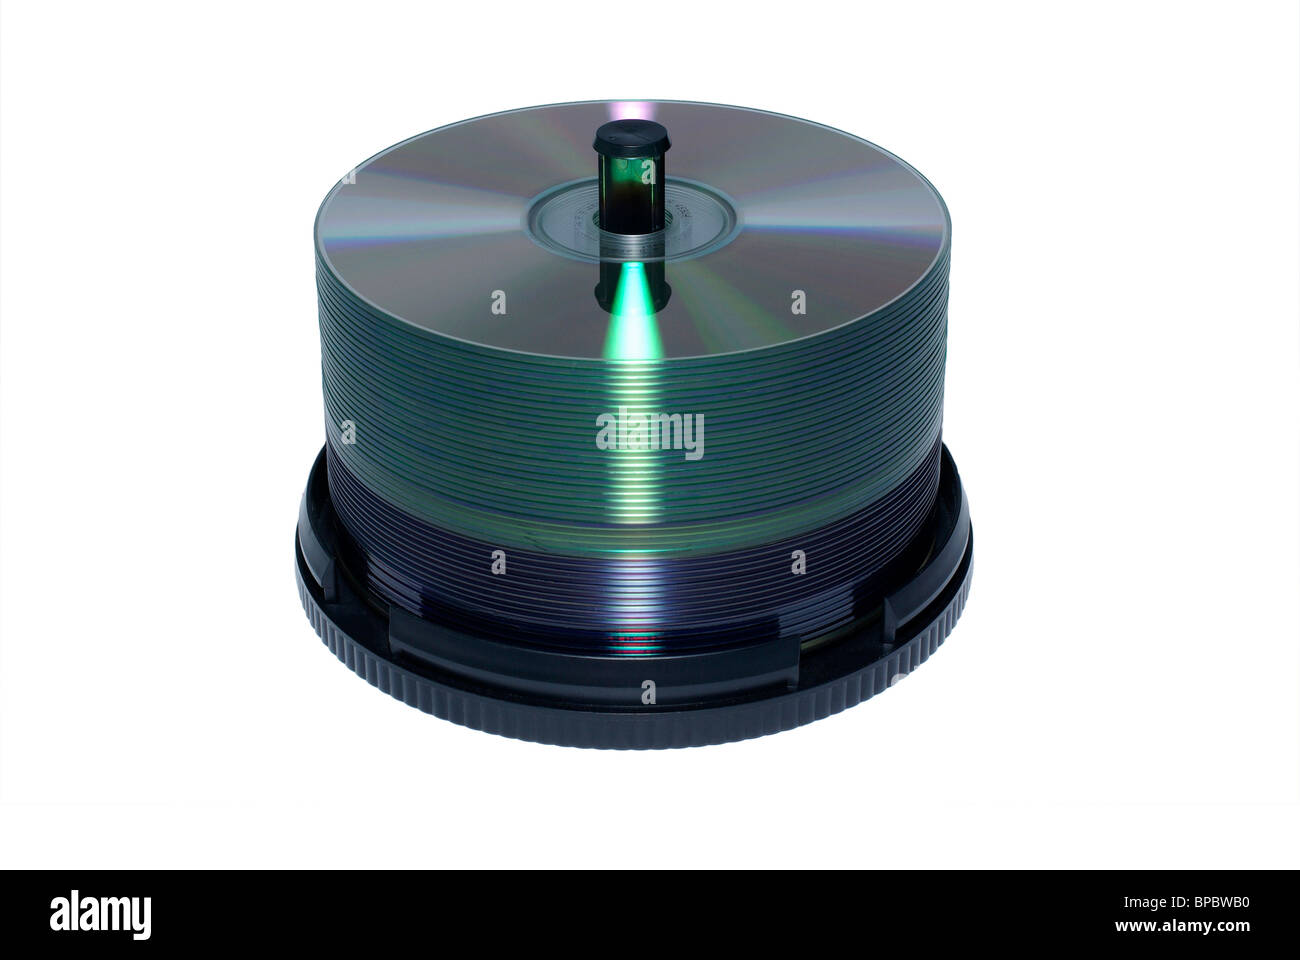 Stack of blank DVD and CD discs isolated on white background. - Stock Image